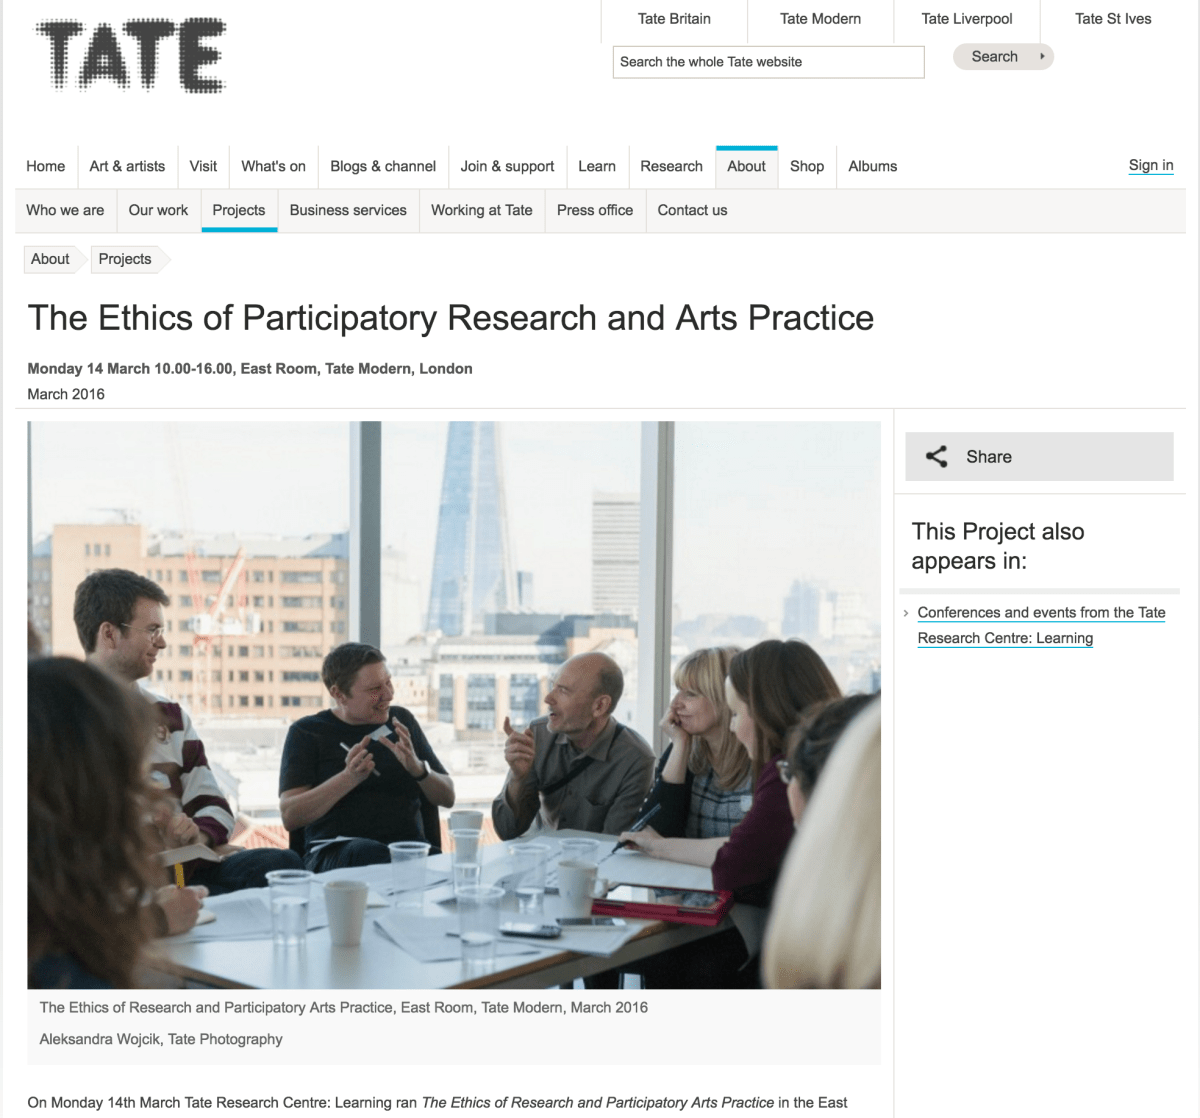 The Ethics of Participatory Research and Arts Practice,        Tate Research Centre: Learning, at the Tate Modern